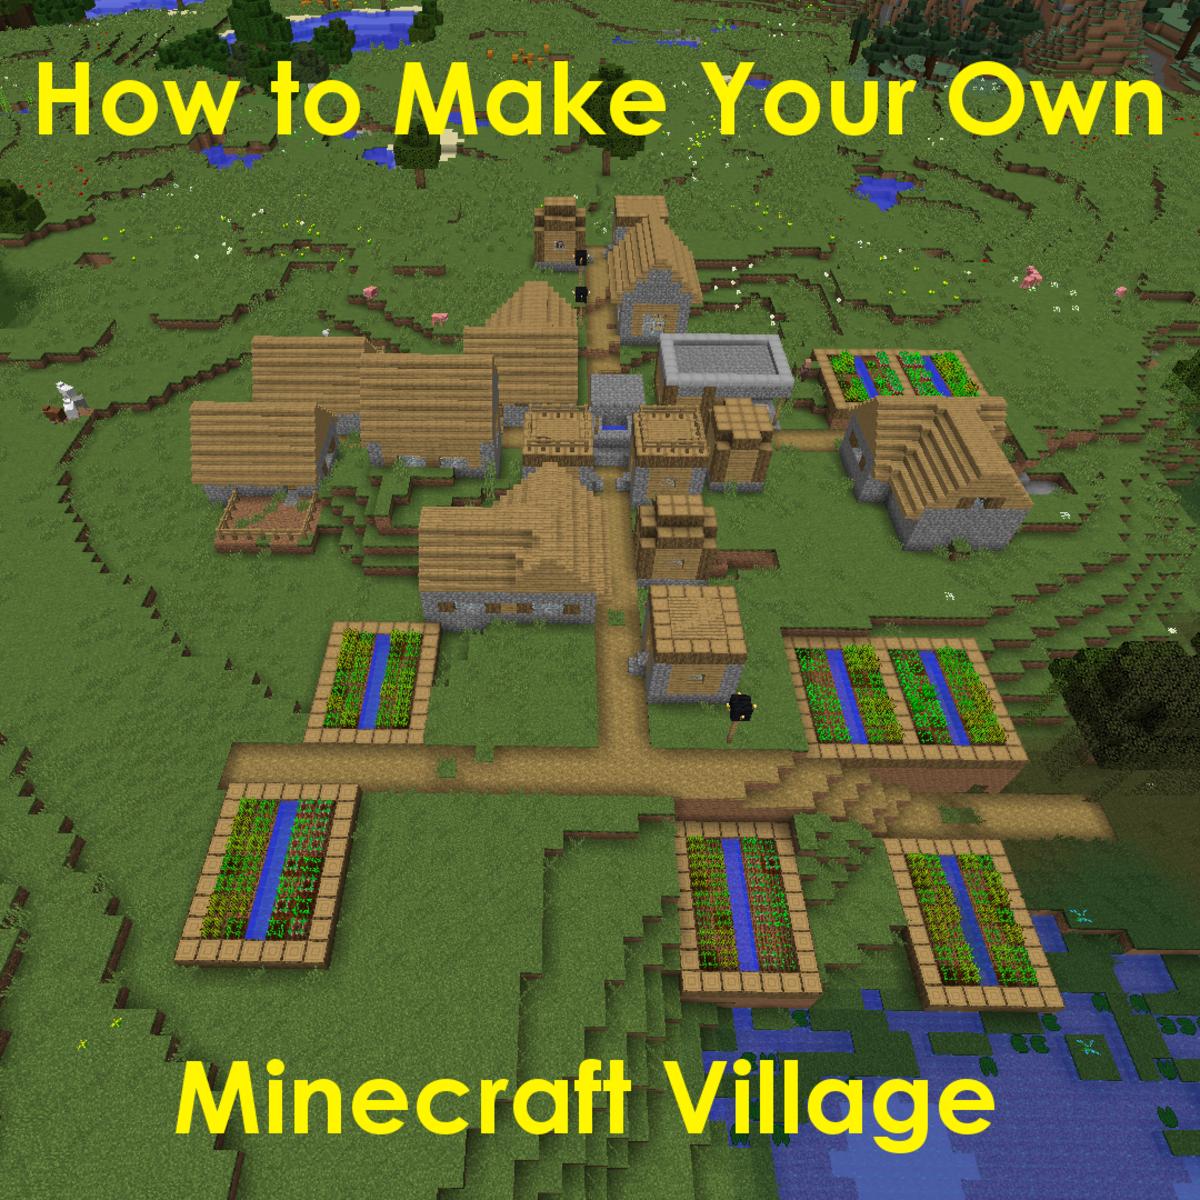 How to Make Your Own Village in Minecraft